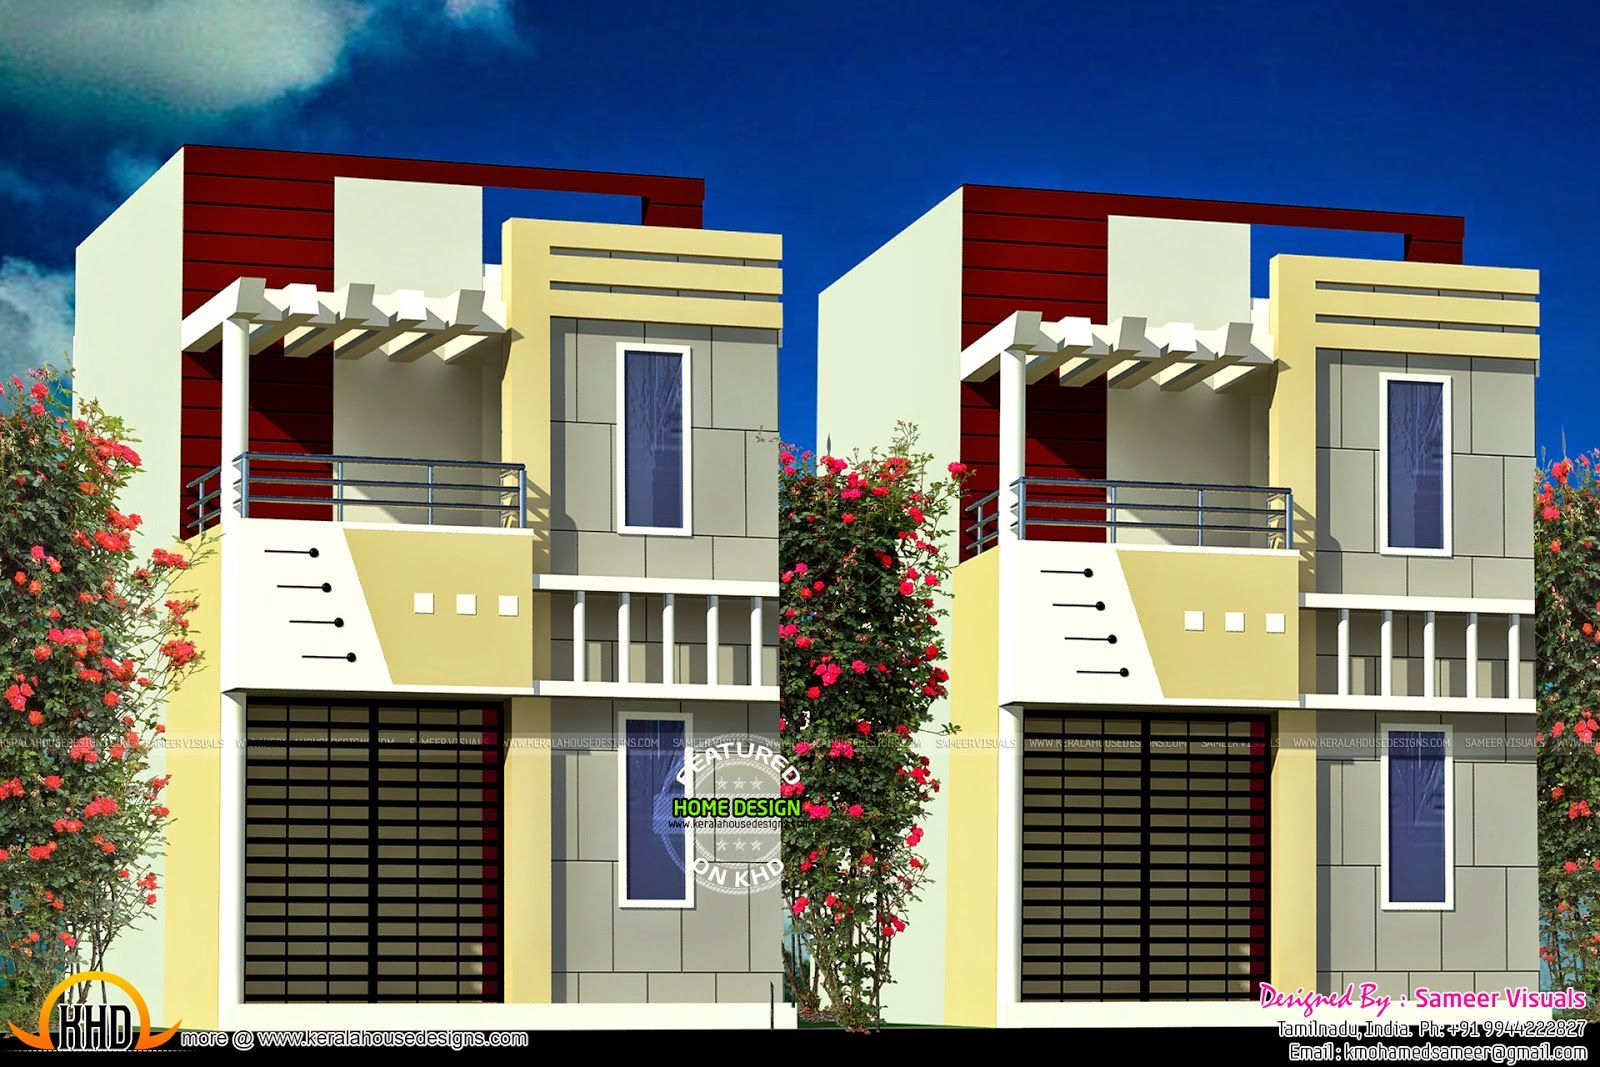 750 sq ft house plans in indian house plans for 750 sq ft house plans in india